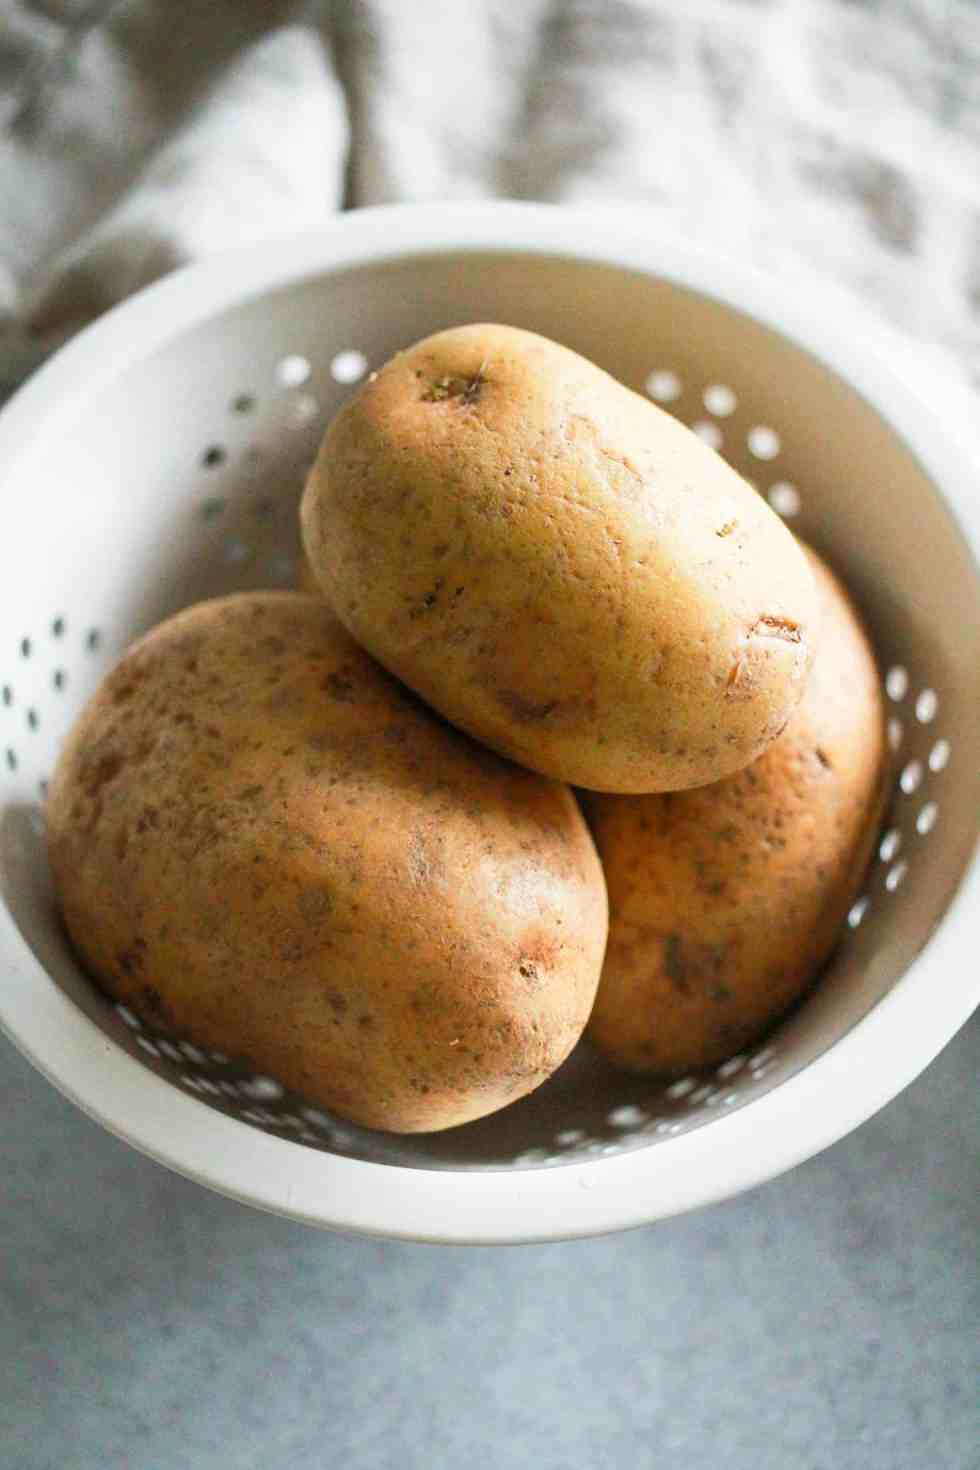 Gold potatoes in a white colander.